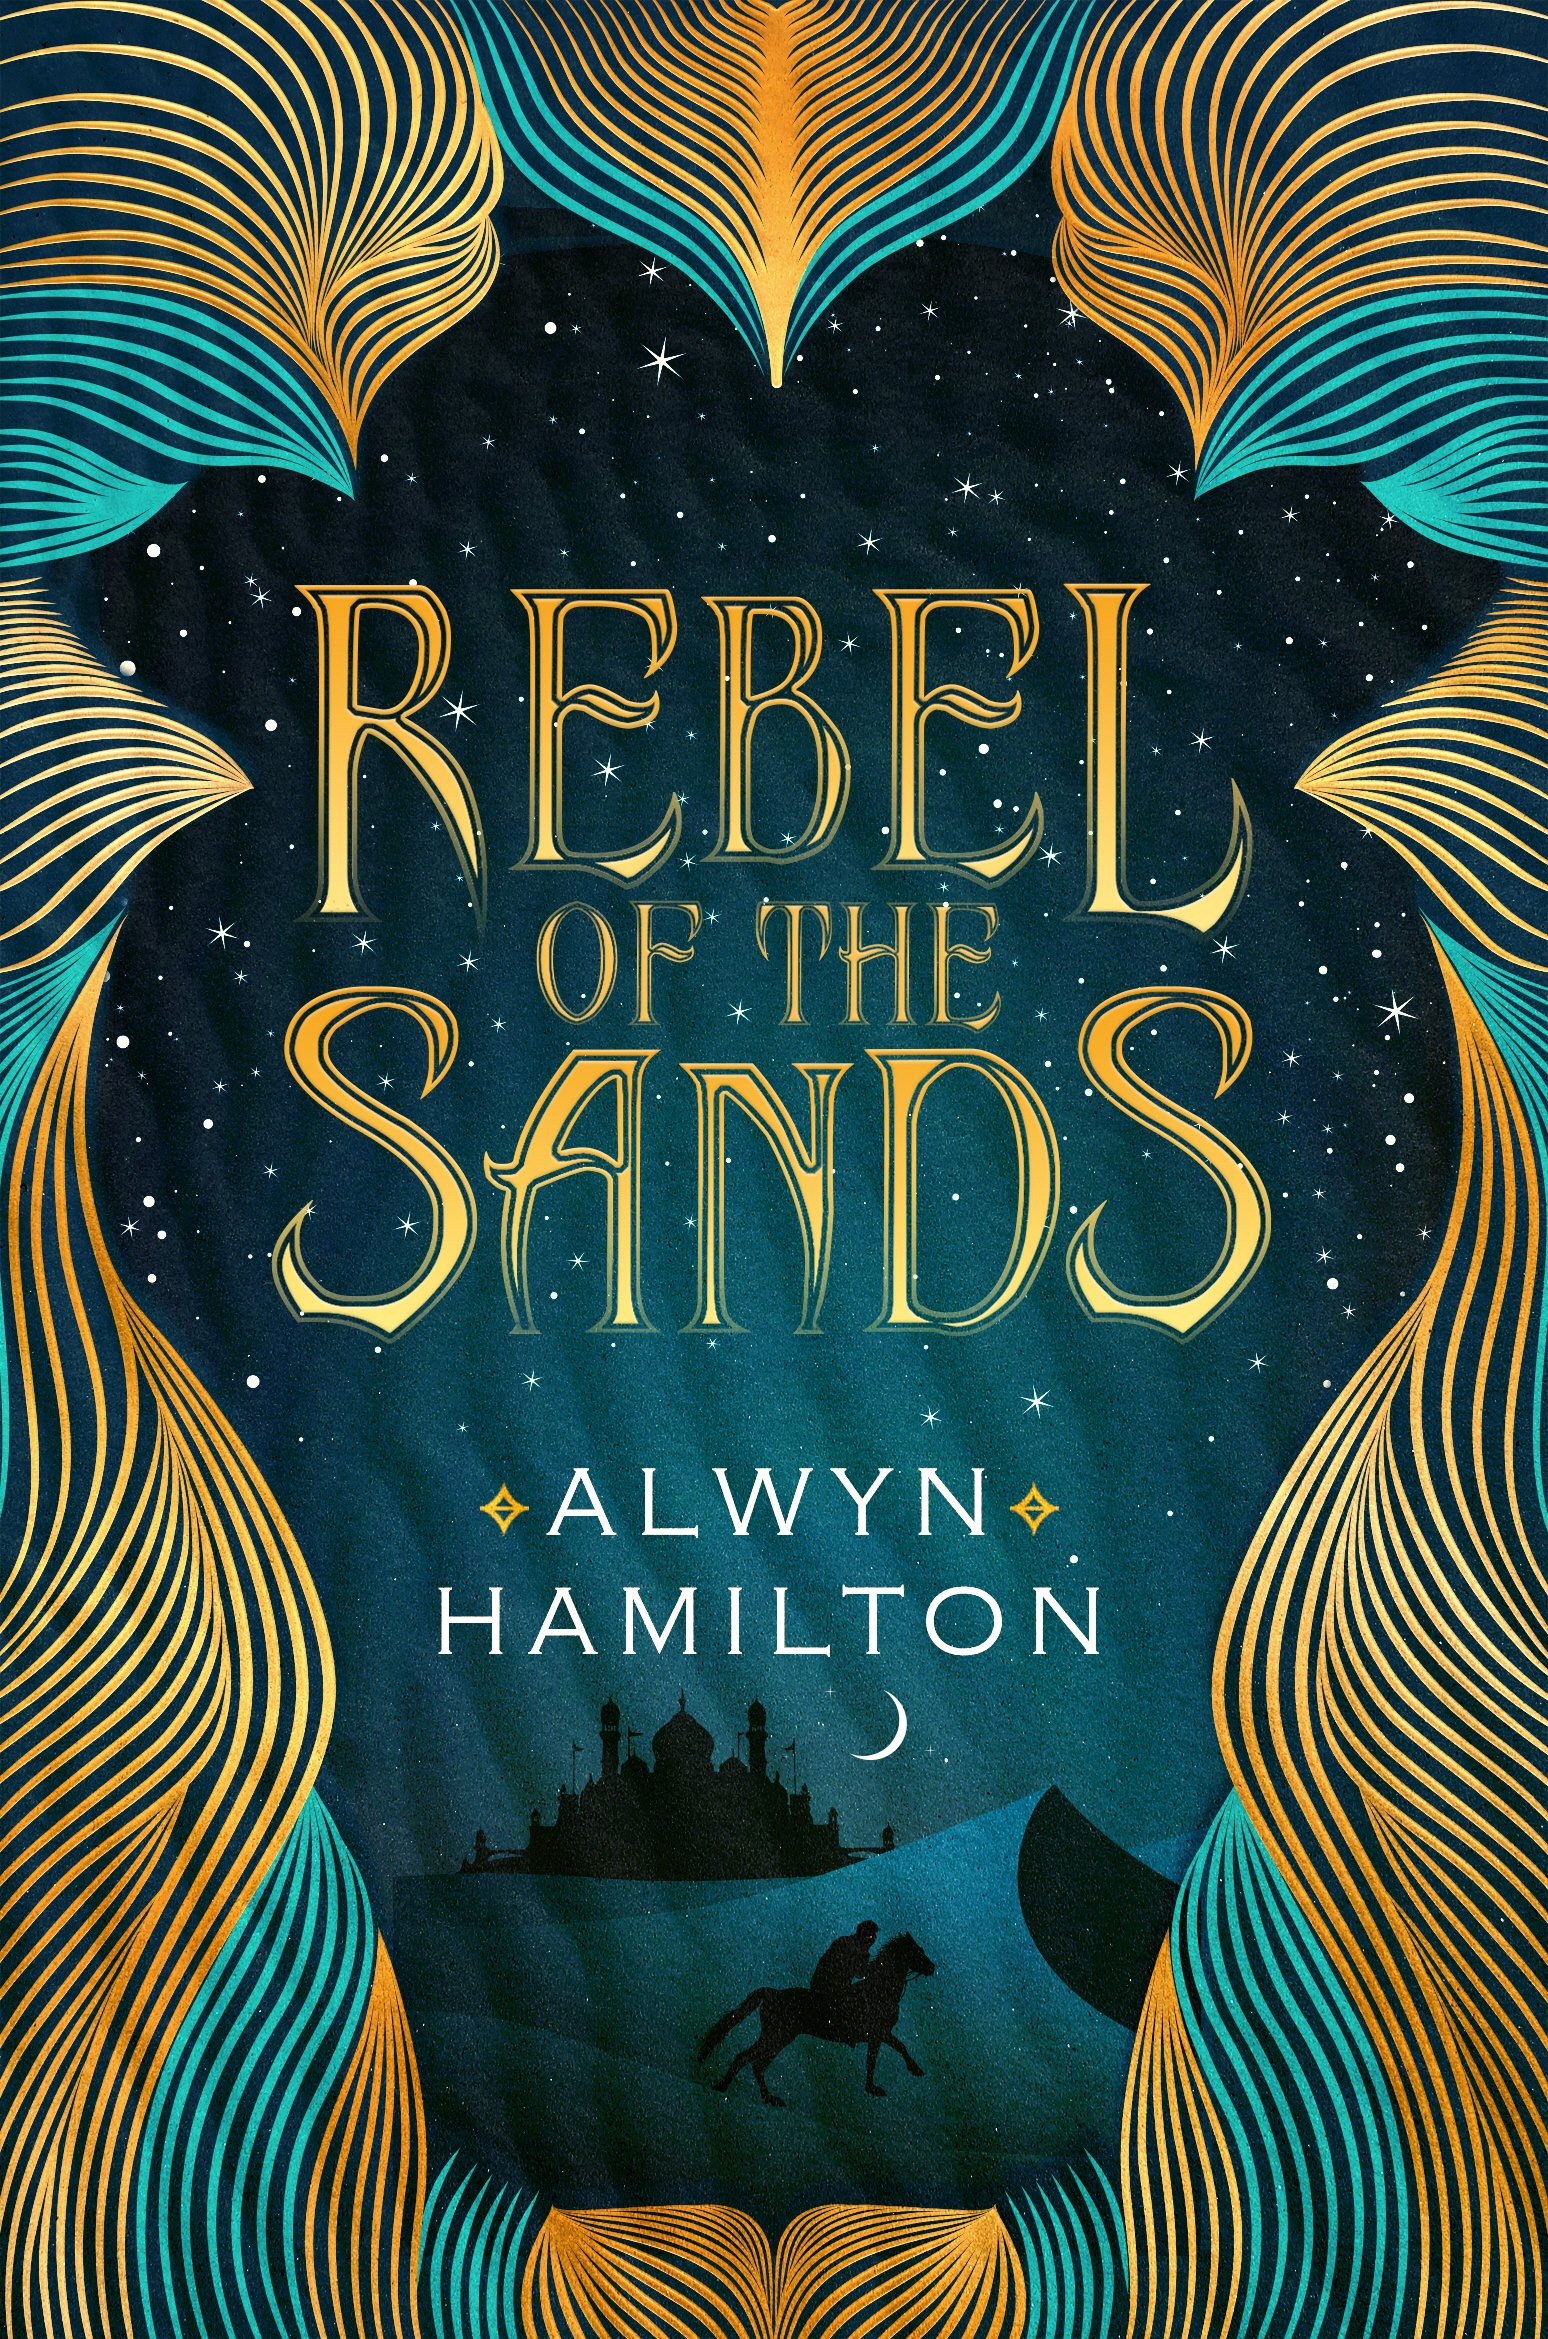 Rebel of the Sands (Anglais) Broché – 4 février 2016 Alwyn Hamilton Faber & Faber 0571325254 Interest age: from c 12 years